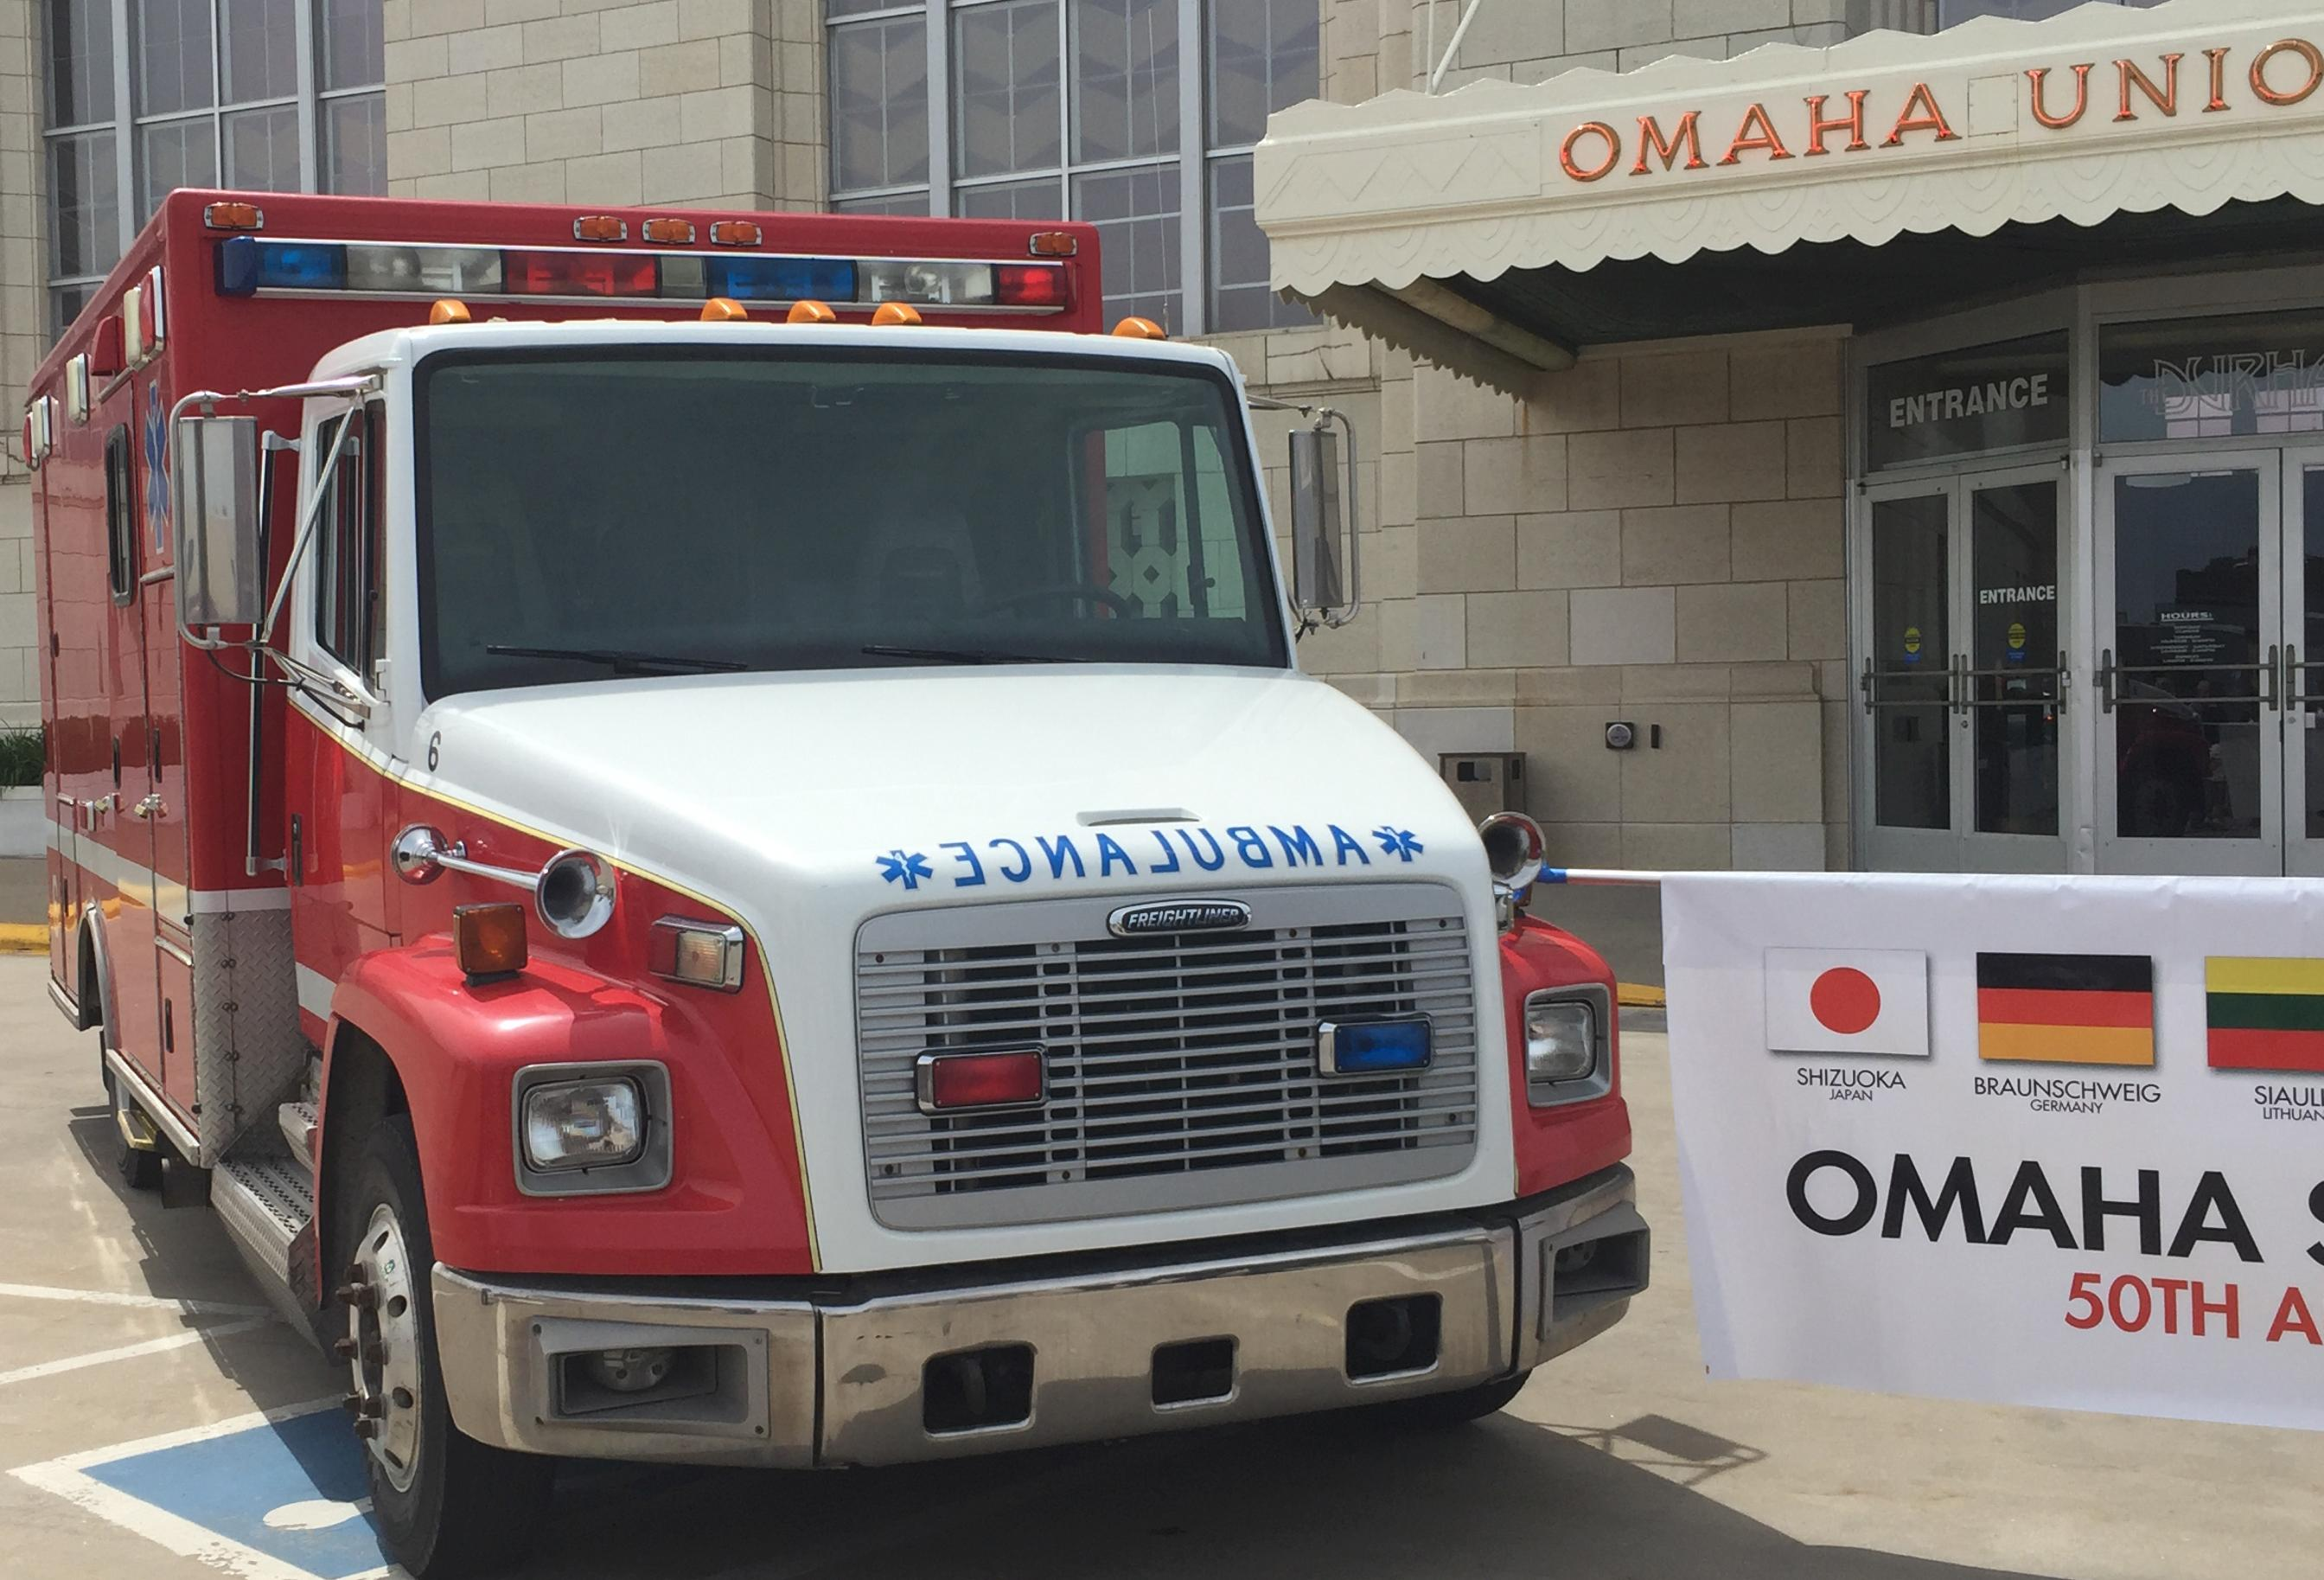 One of the four ambulances Omaha donated to Xalapa.